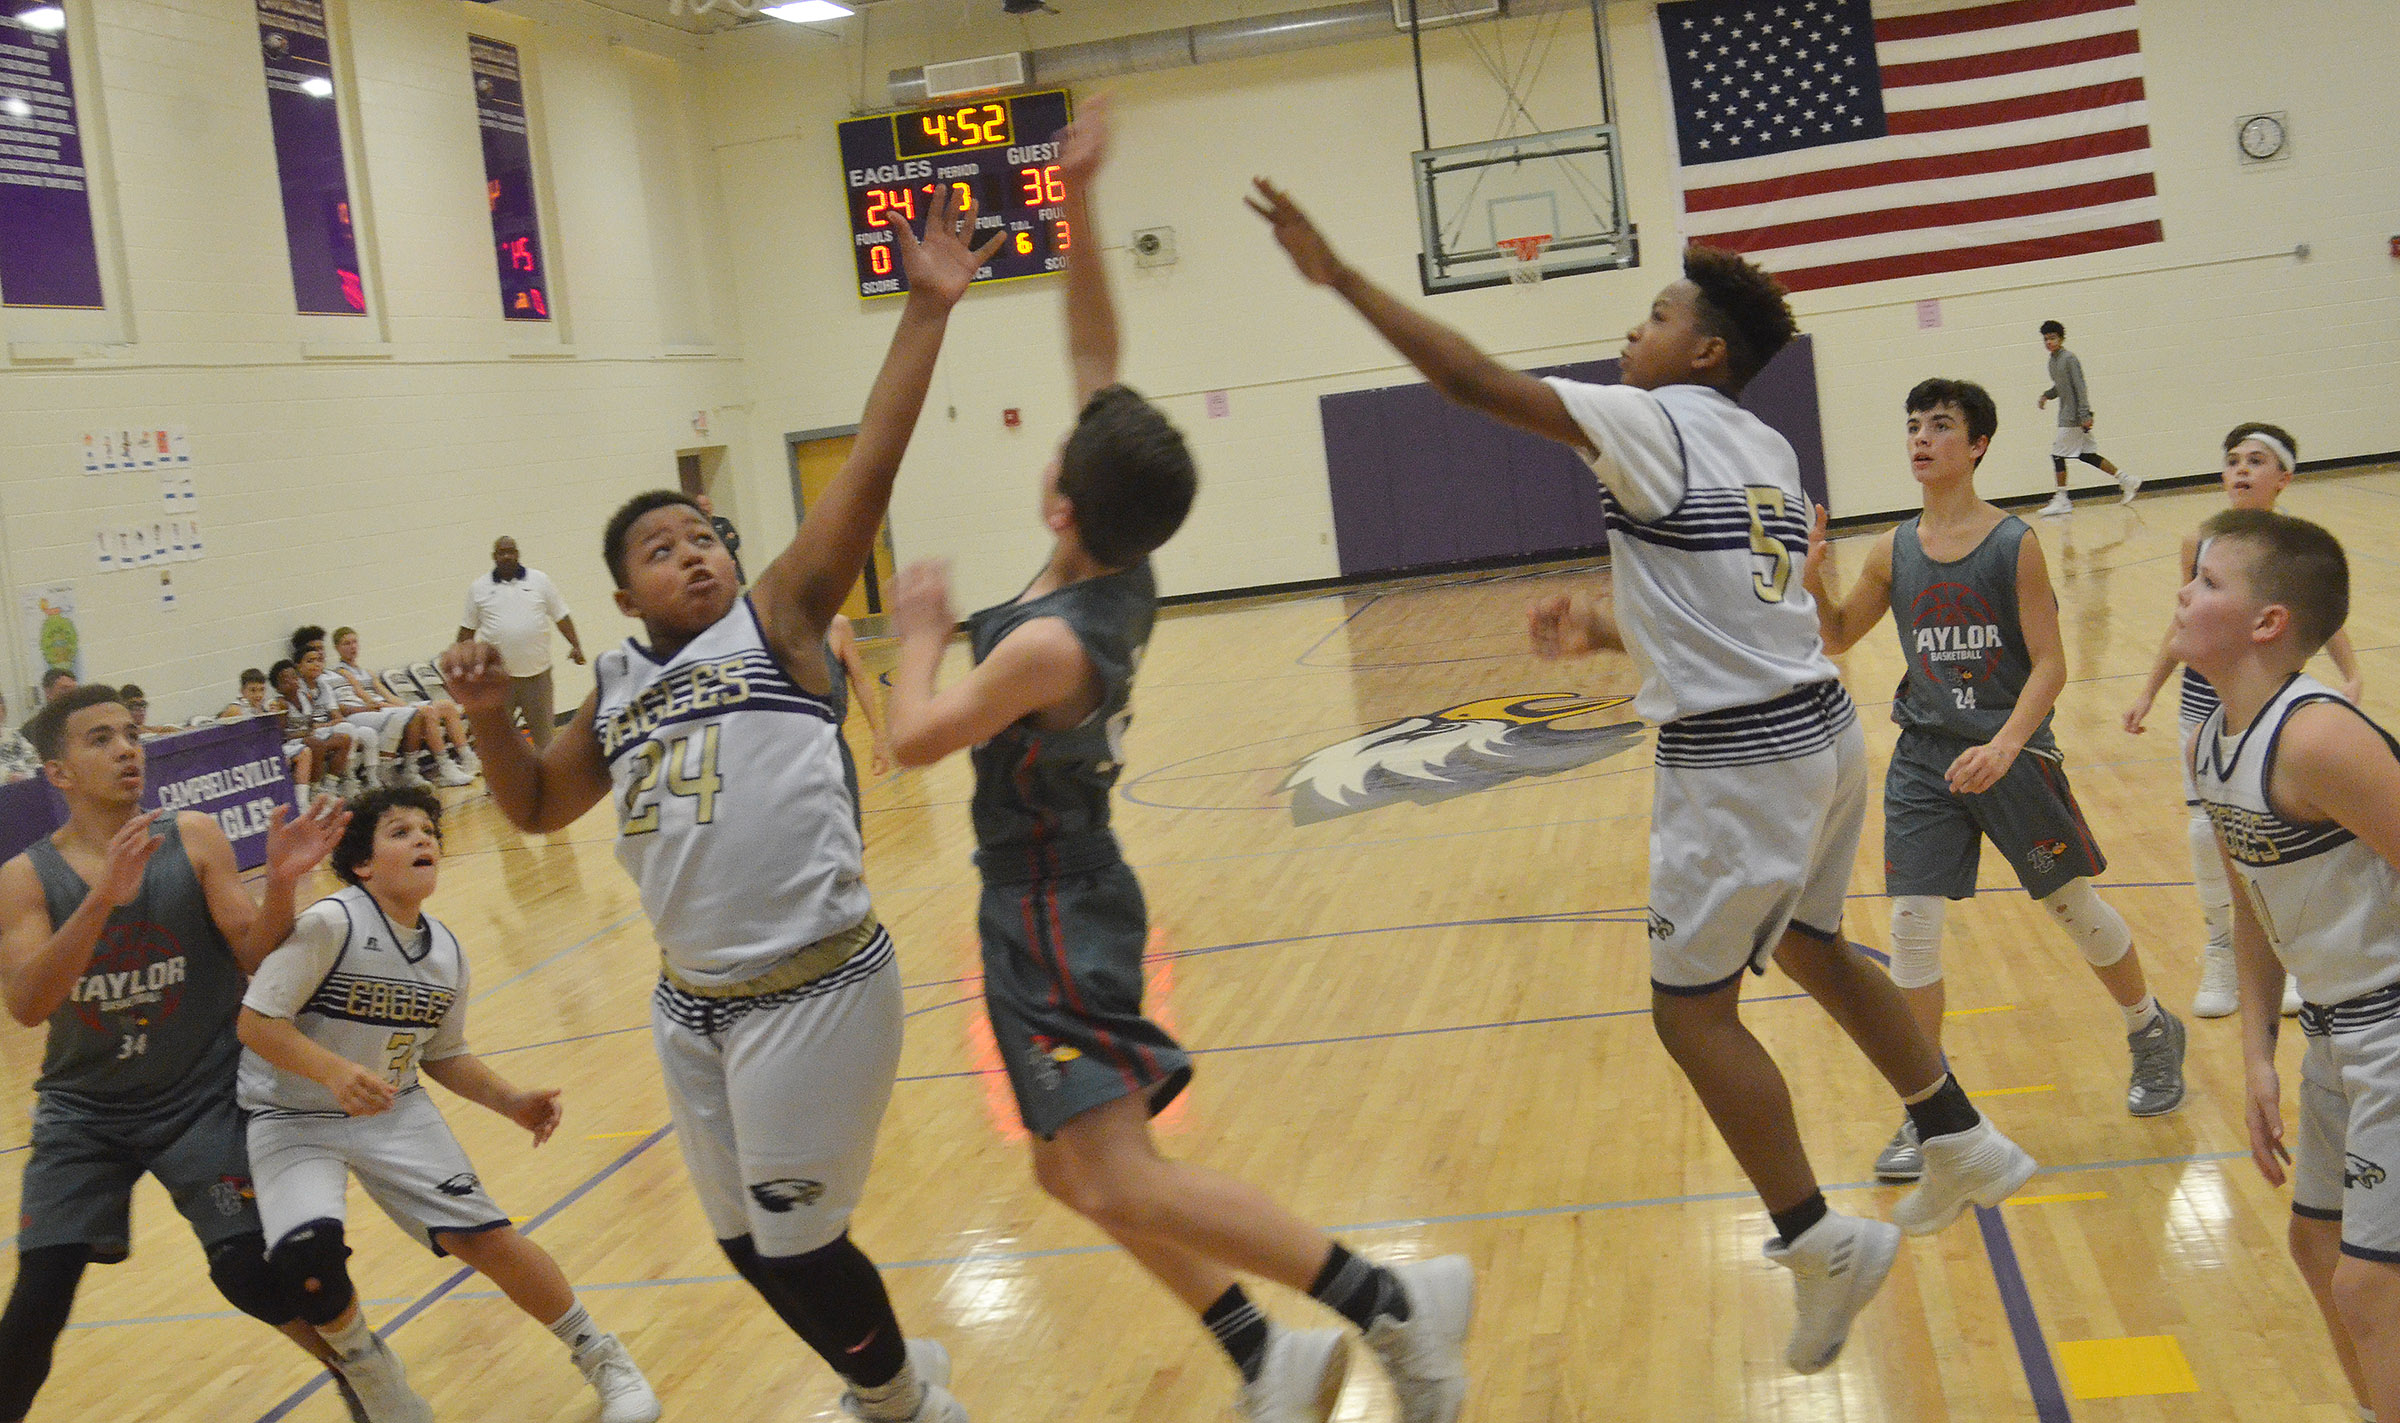 CMS seventh-graders Keondre Weathers, at left, and his twin brother Deondre Weathers jump to block a shot.